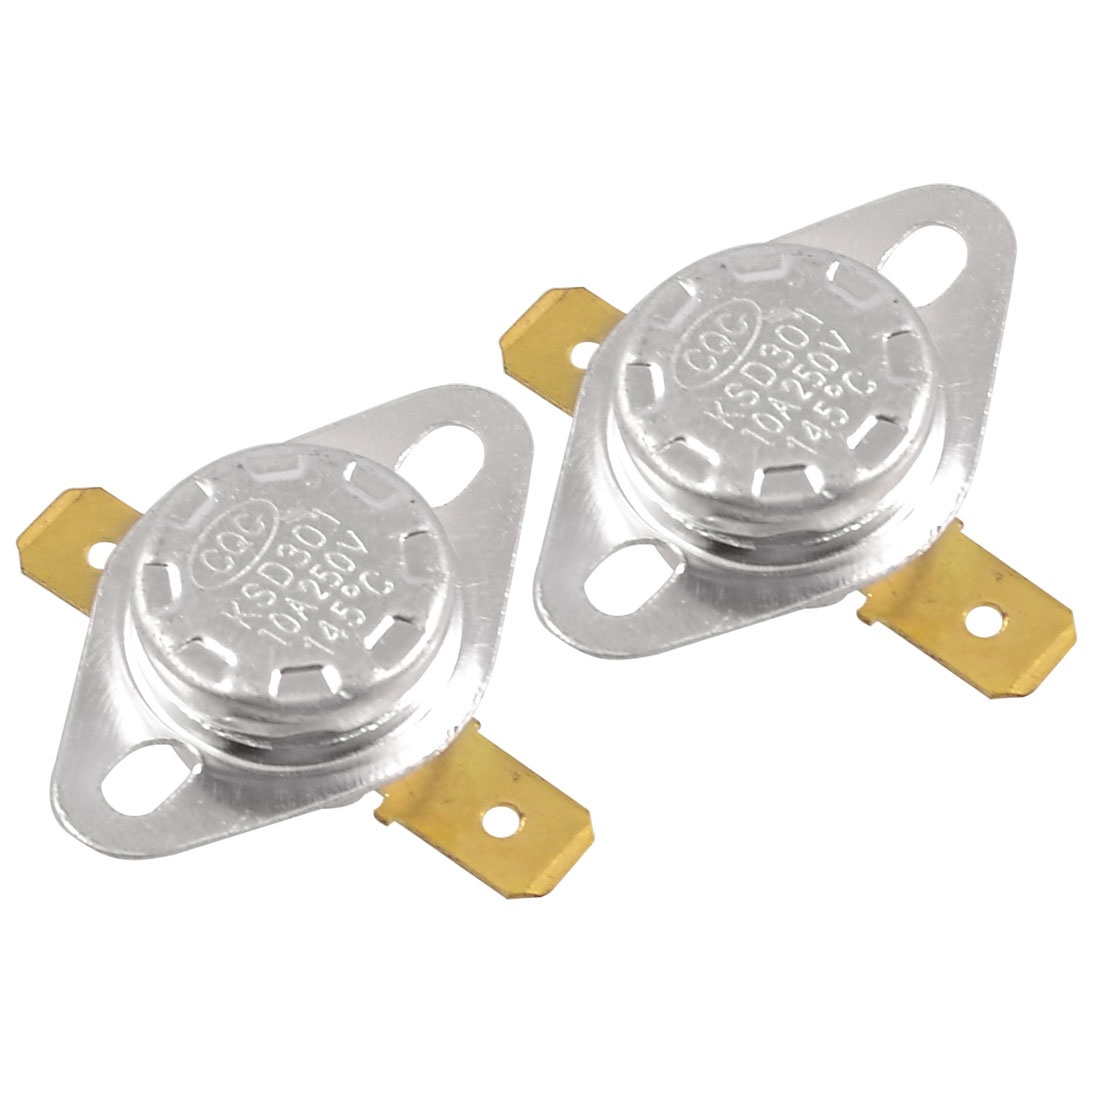 2 Pcs 145 Celsius Normal Closed Ceramic Thermostat KSD301